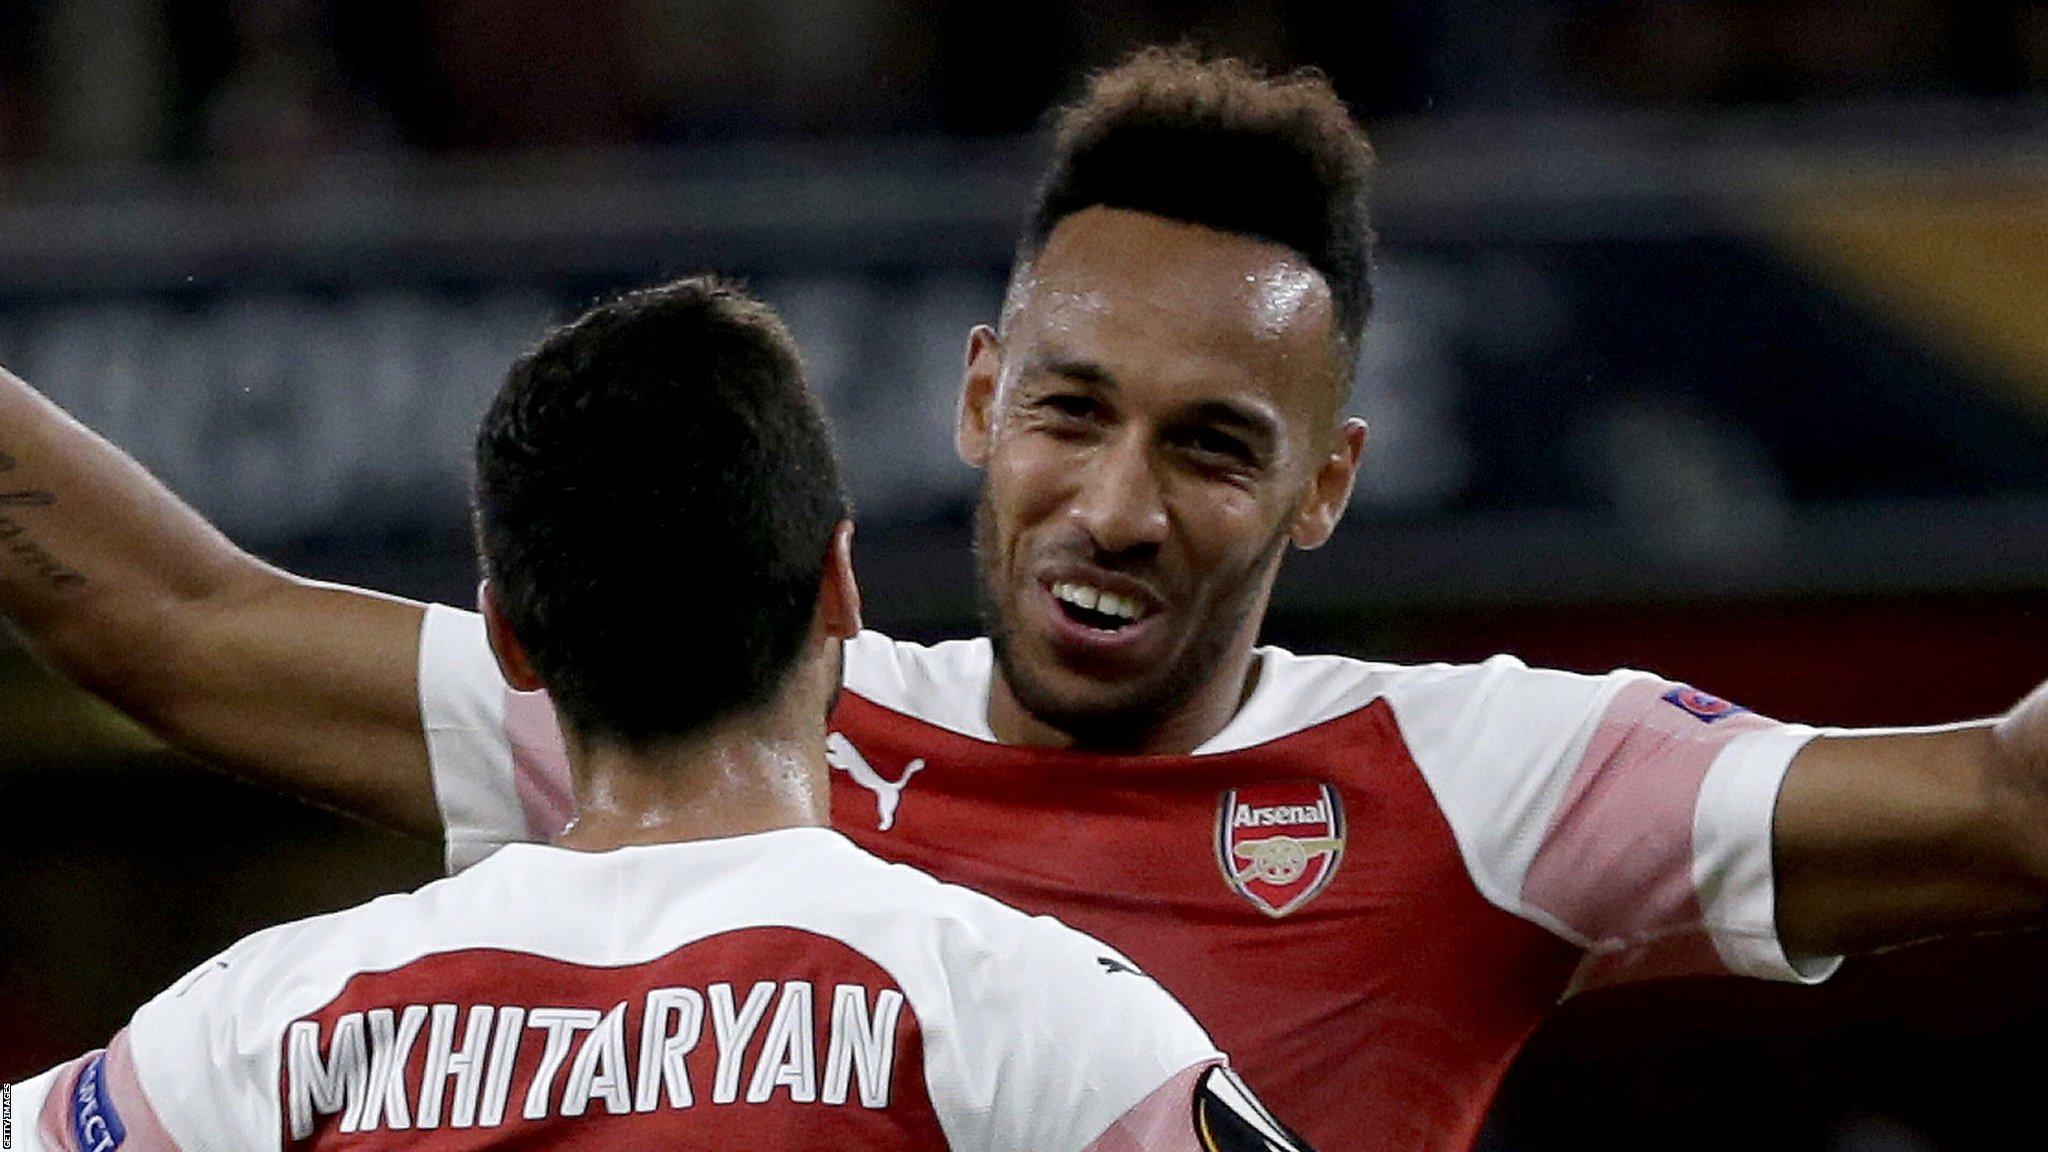 Arsenal 4-2 Vorskla Poltava: Gunners cruise to Europa League win